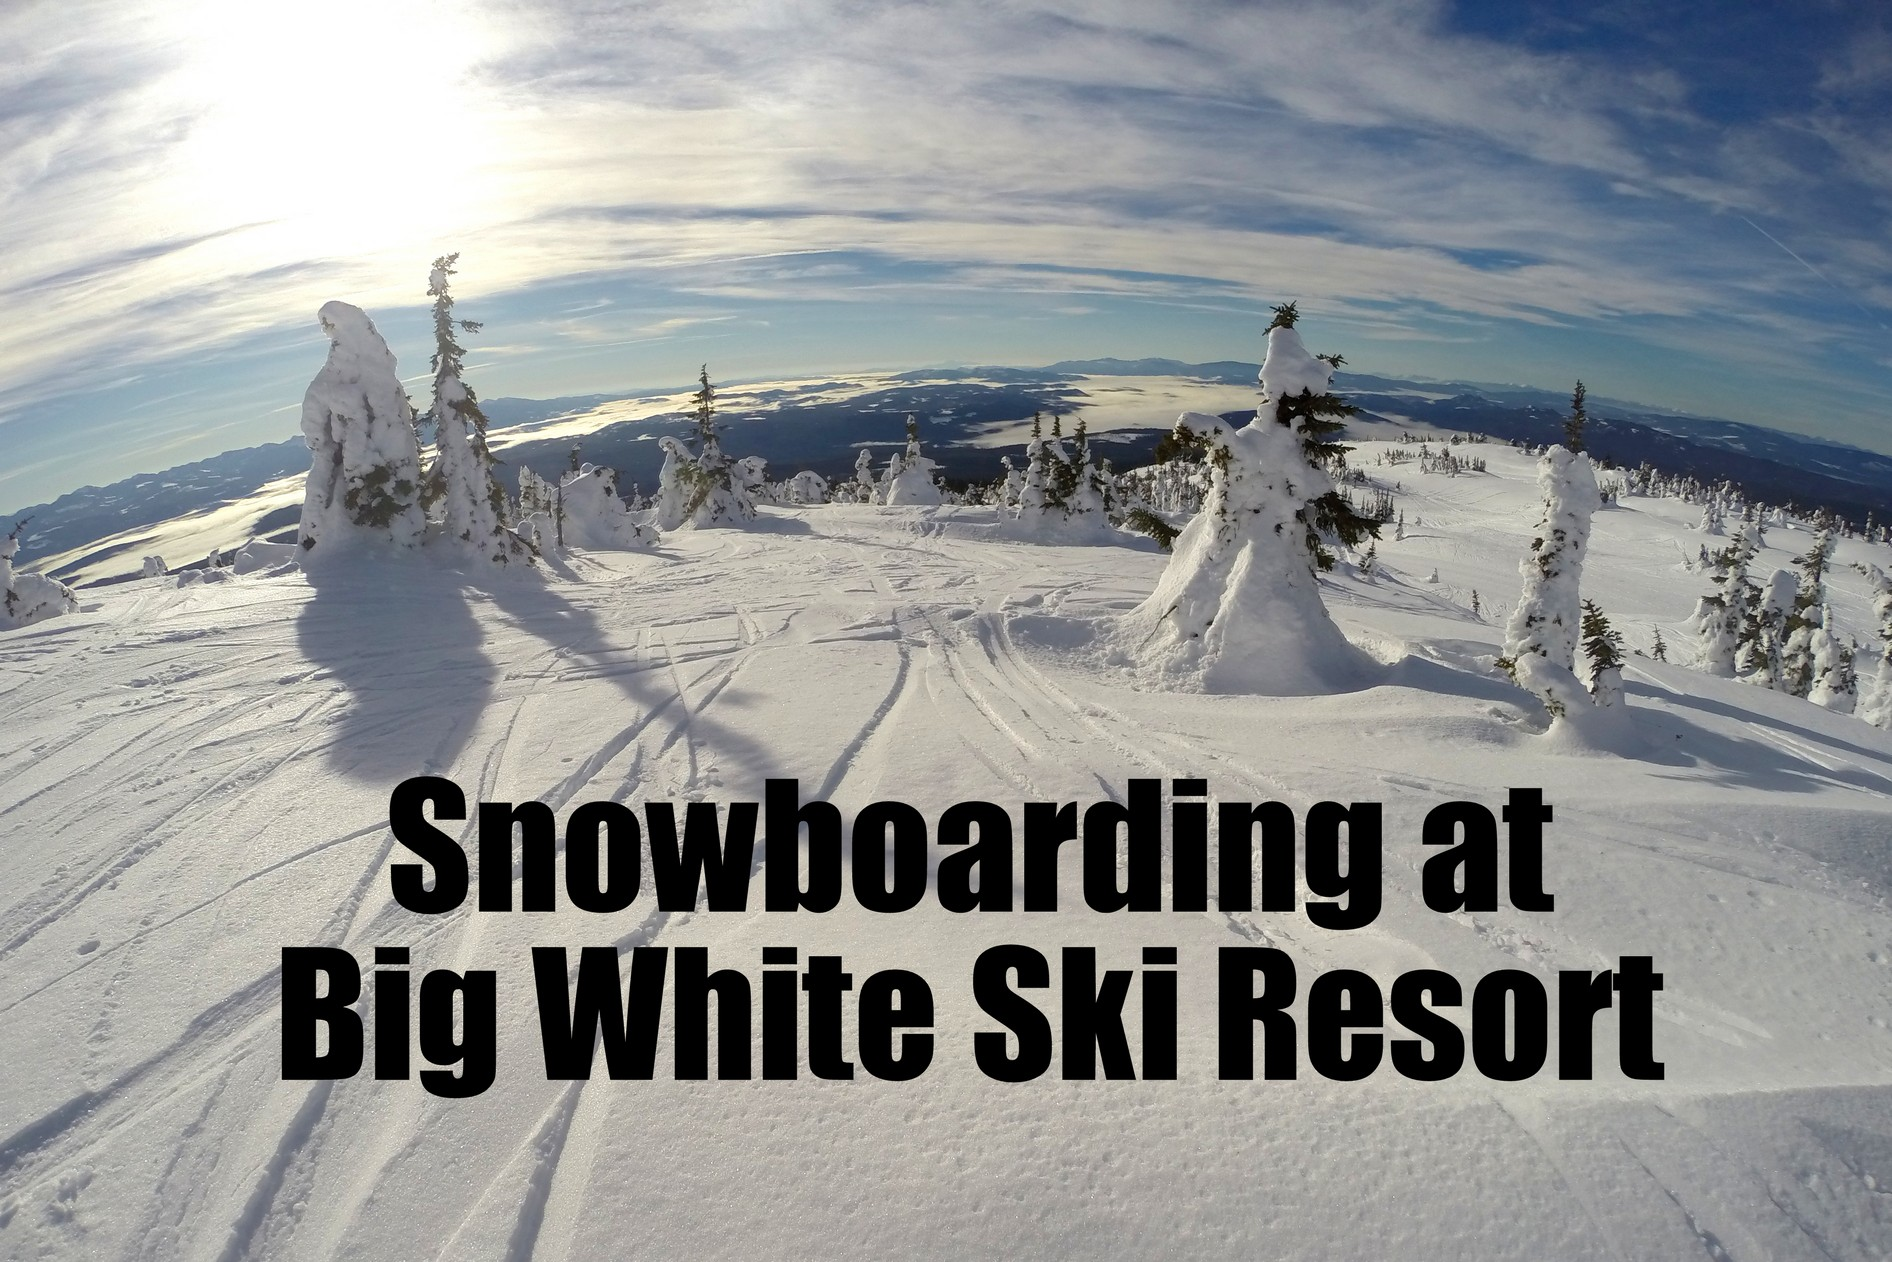 VIDEO: Snowboarding at Big White Ski Resort